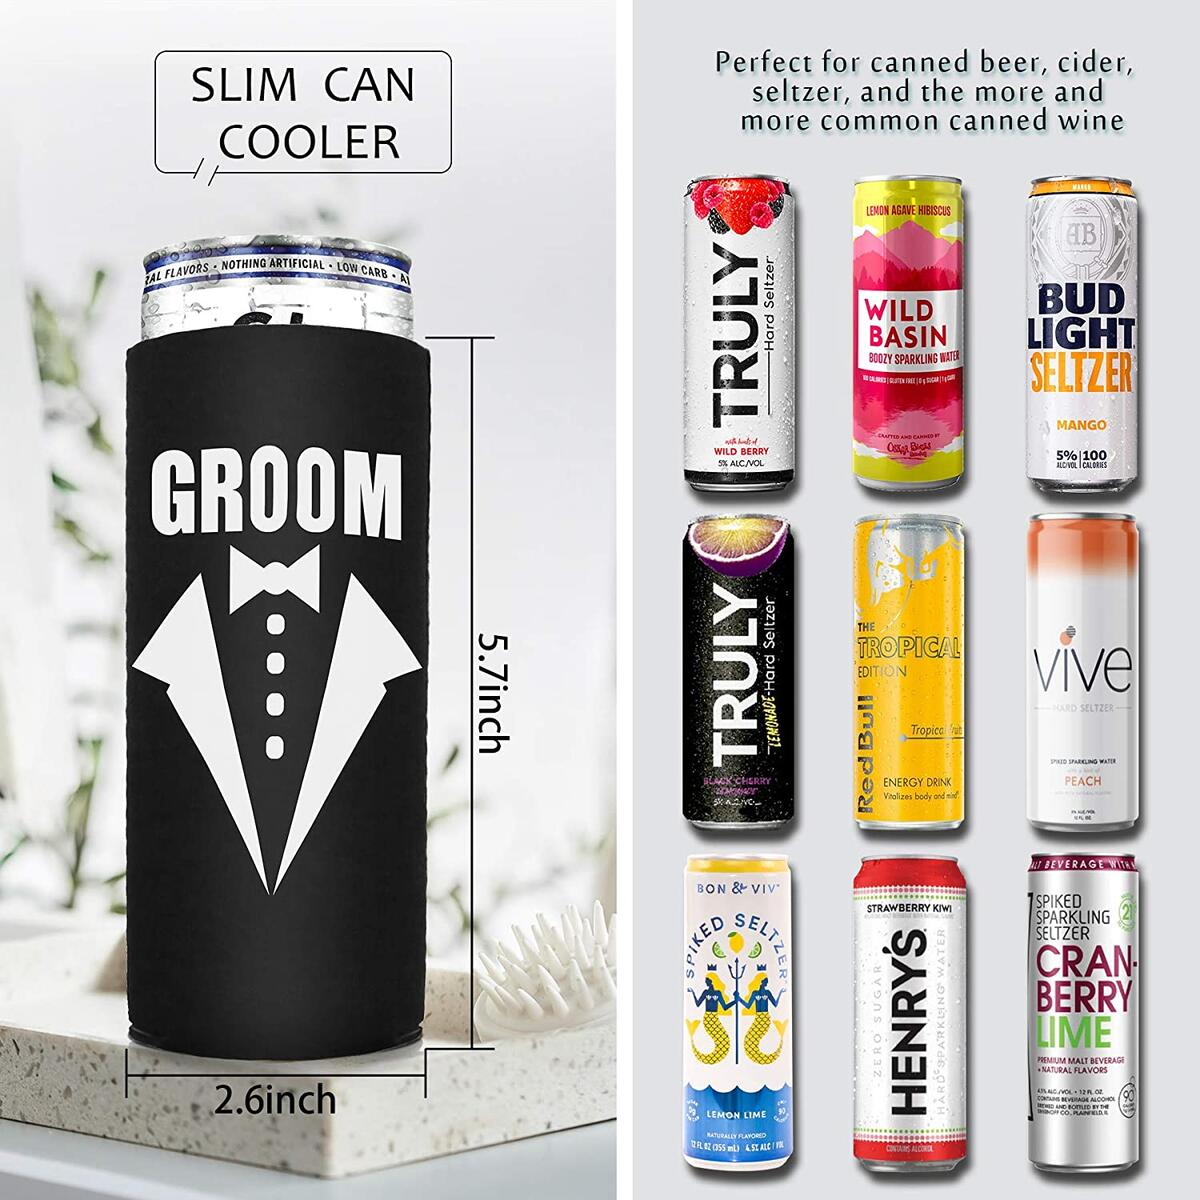 Bride And Groom Coozie Wedding Gifts For Couples Engagement Gifts For Bride And Groom Gifts Bride Coozie Wedding Coozies Skinny Can Coozie White Claw Coozie Slim Can Coolers Engagement Cooler